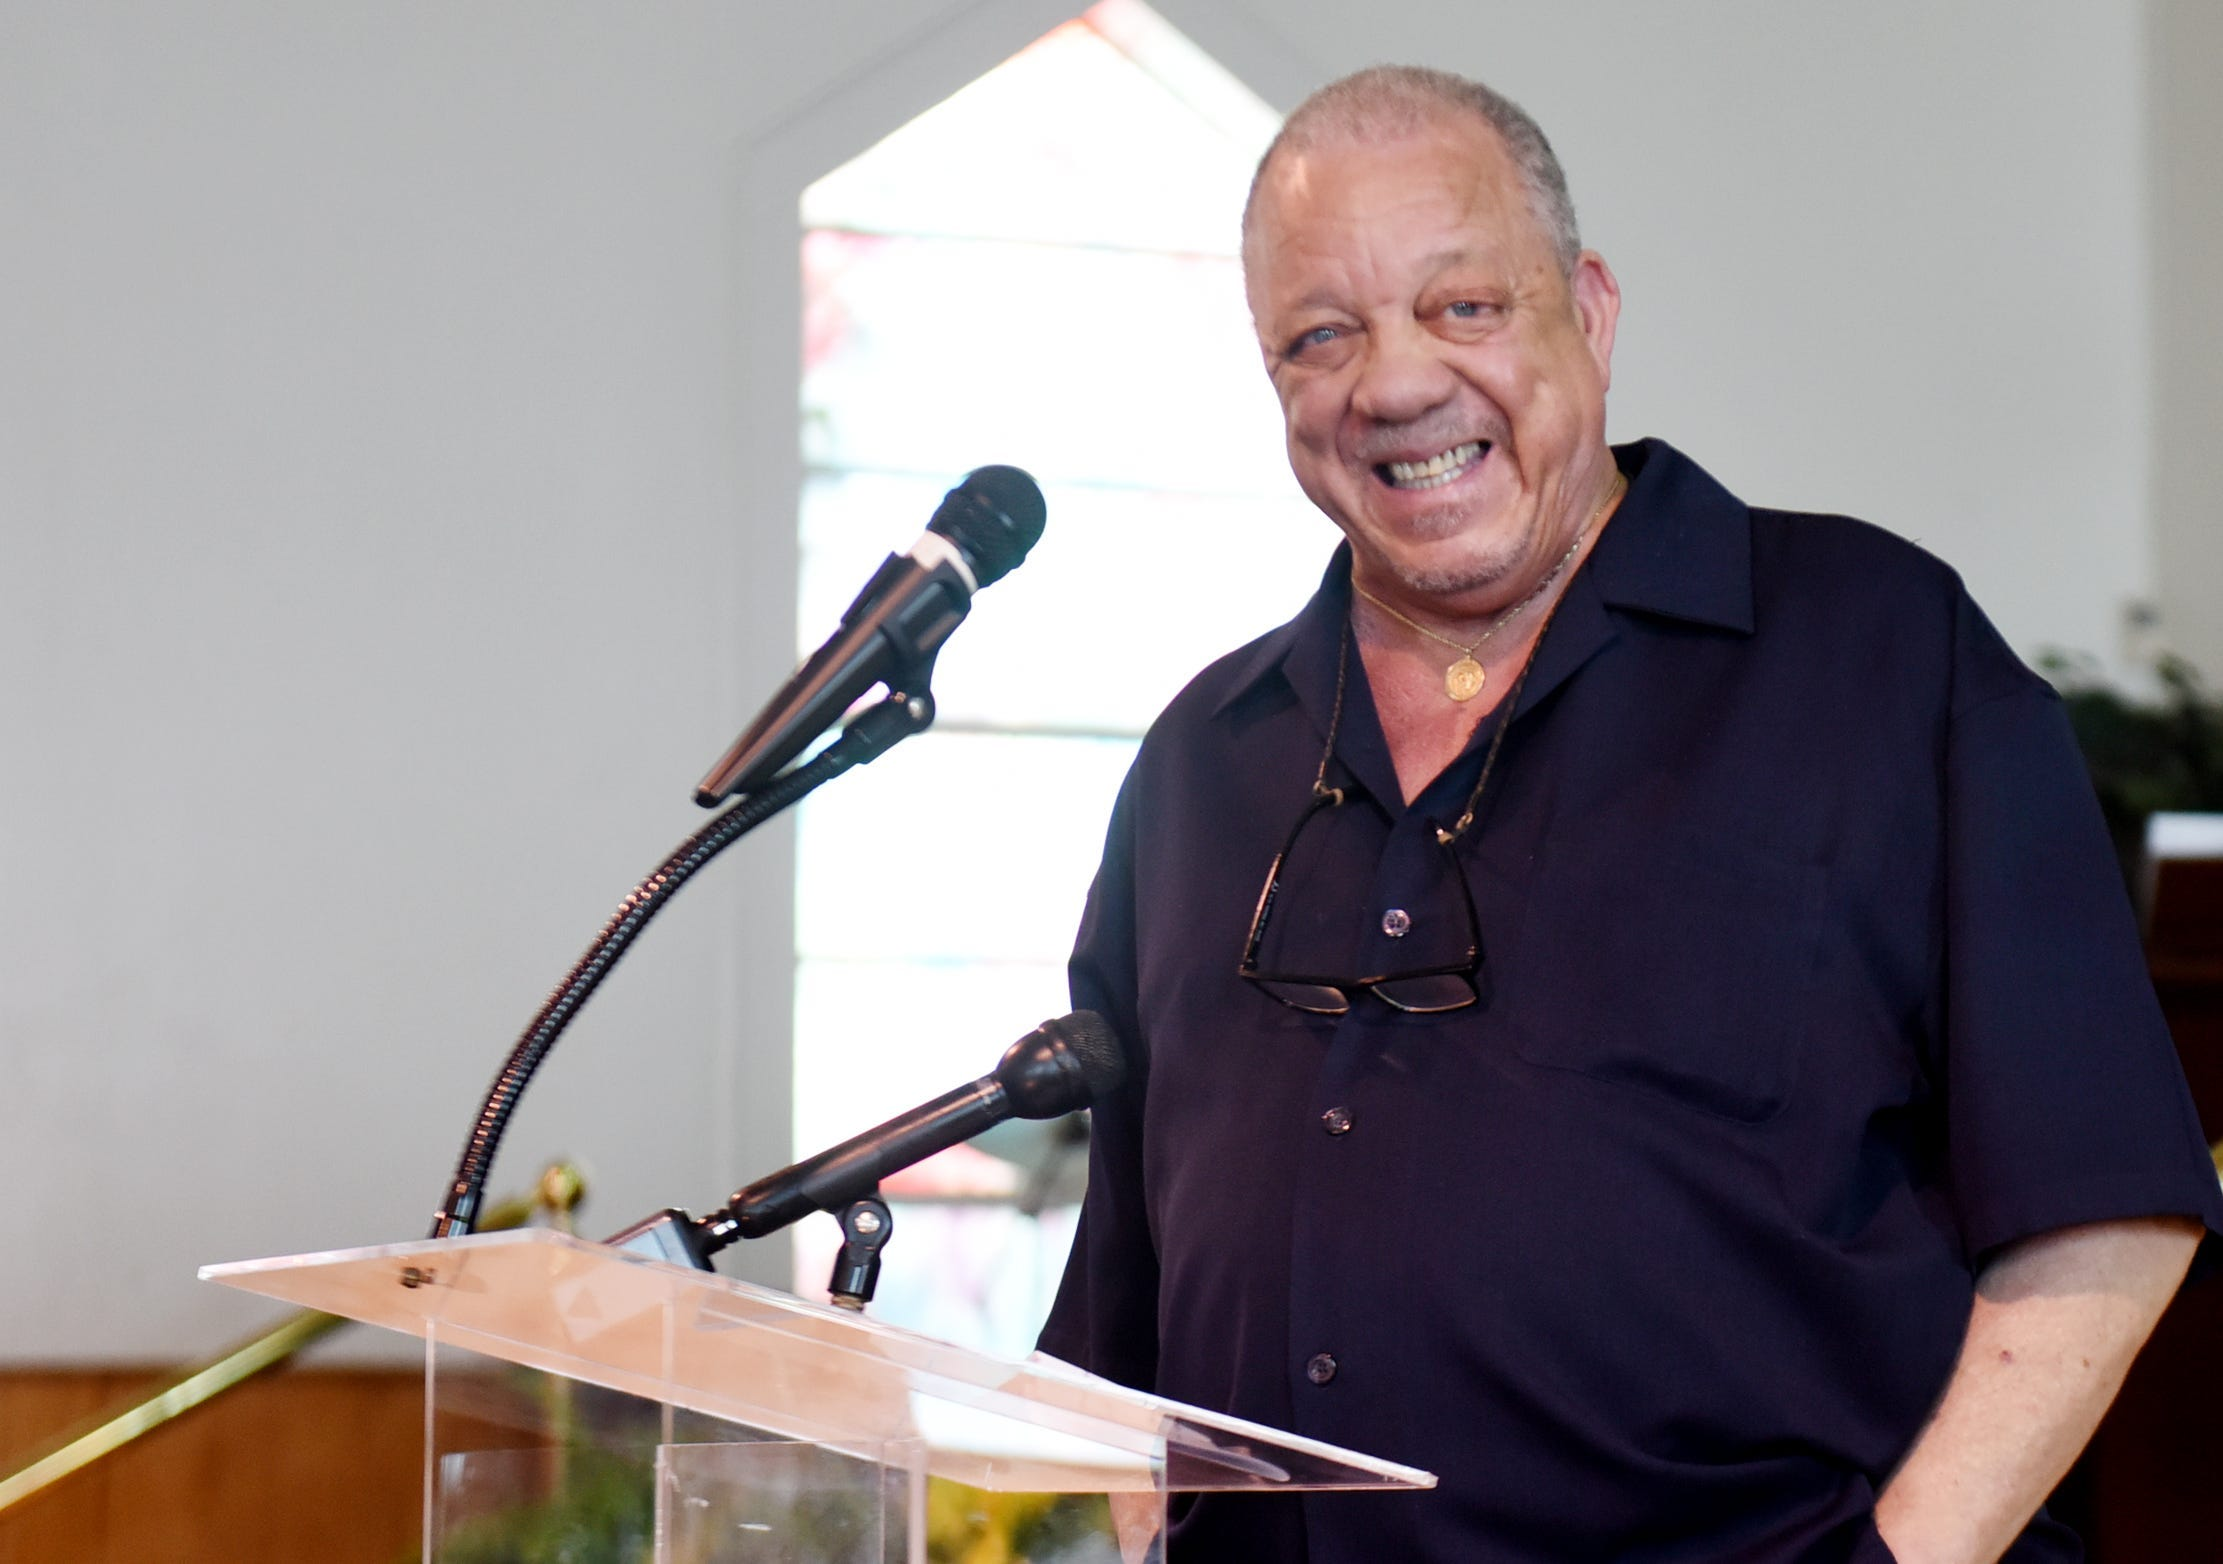 1960s Civil Rights Worker and Freedom Rider Dave Dennis speaks at Little Union Baptists Church on June 18, 2021, in Shreveport, La.